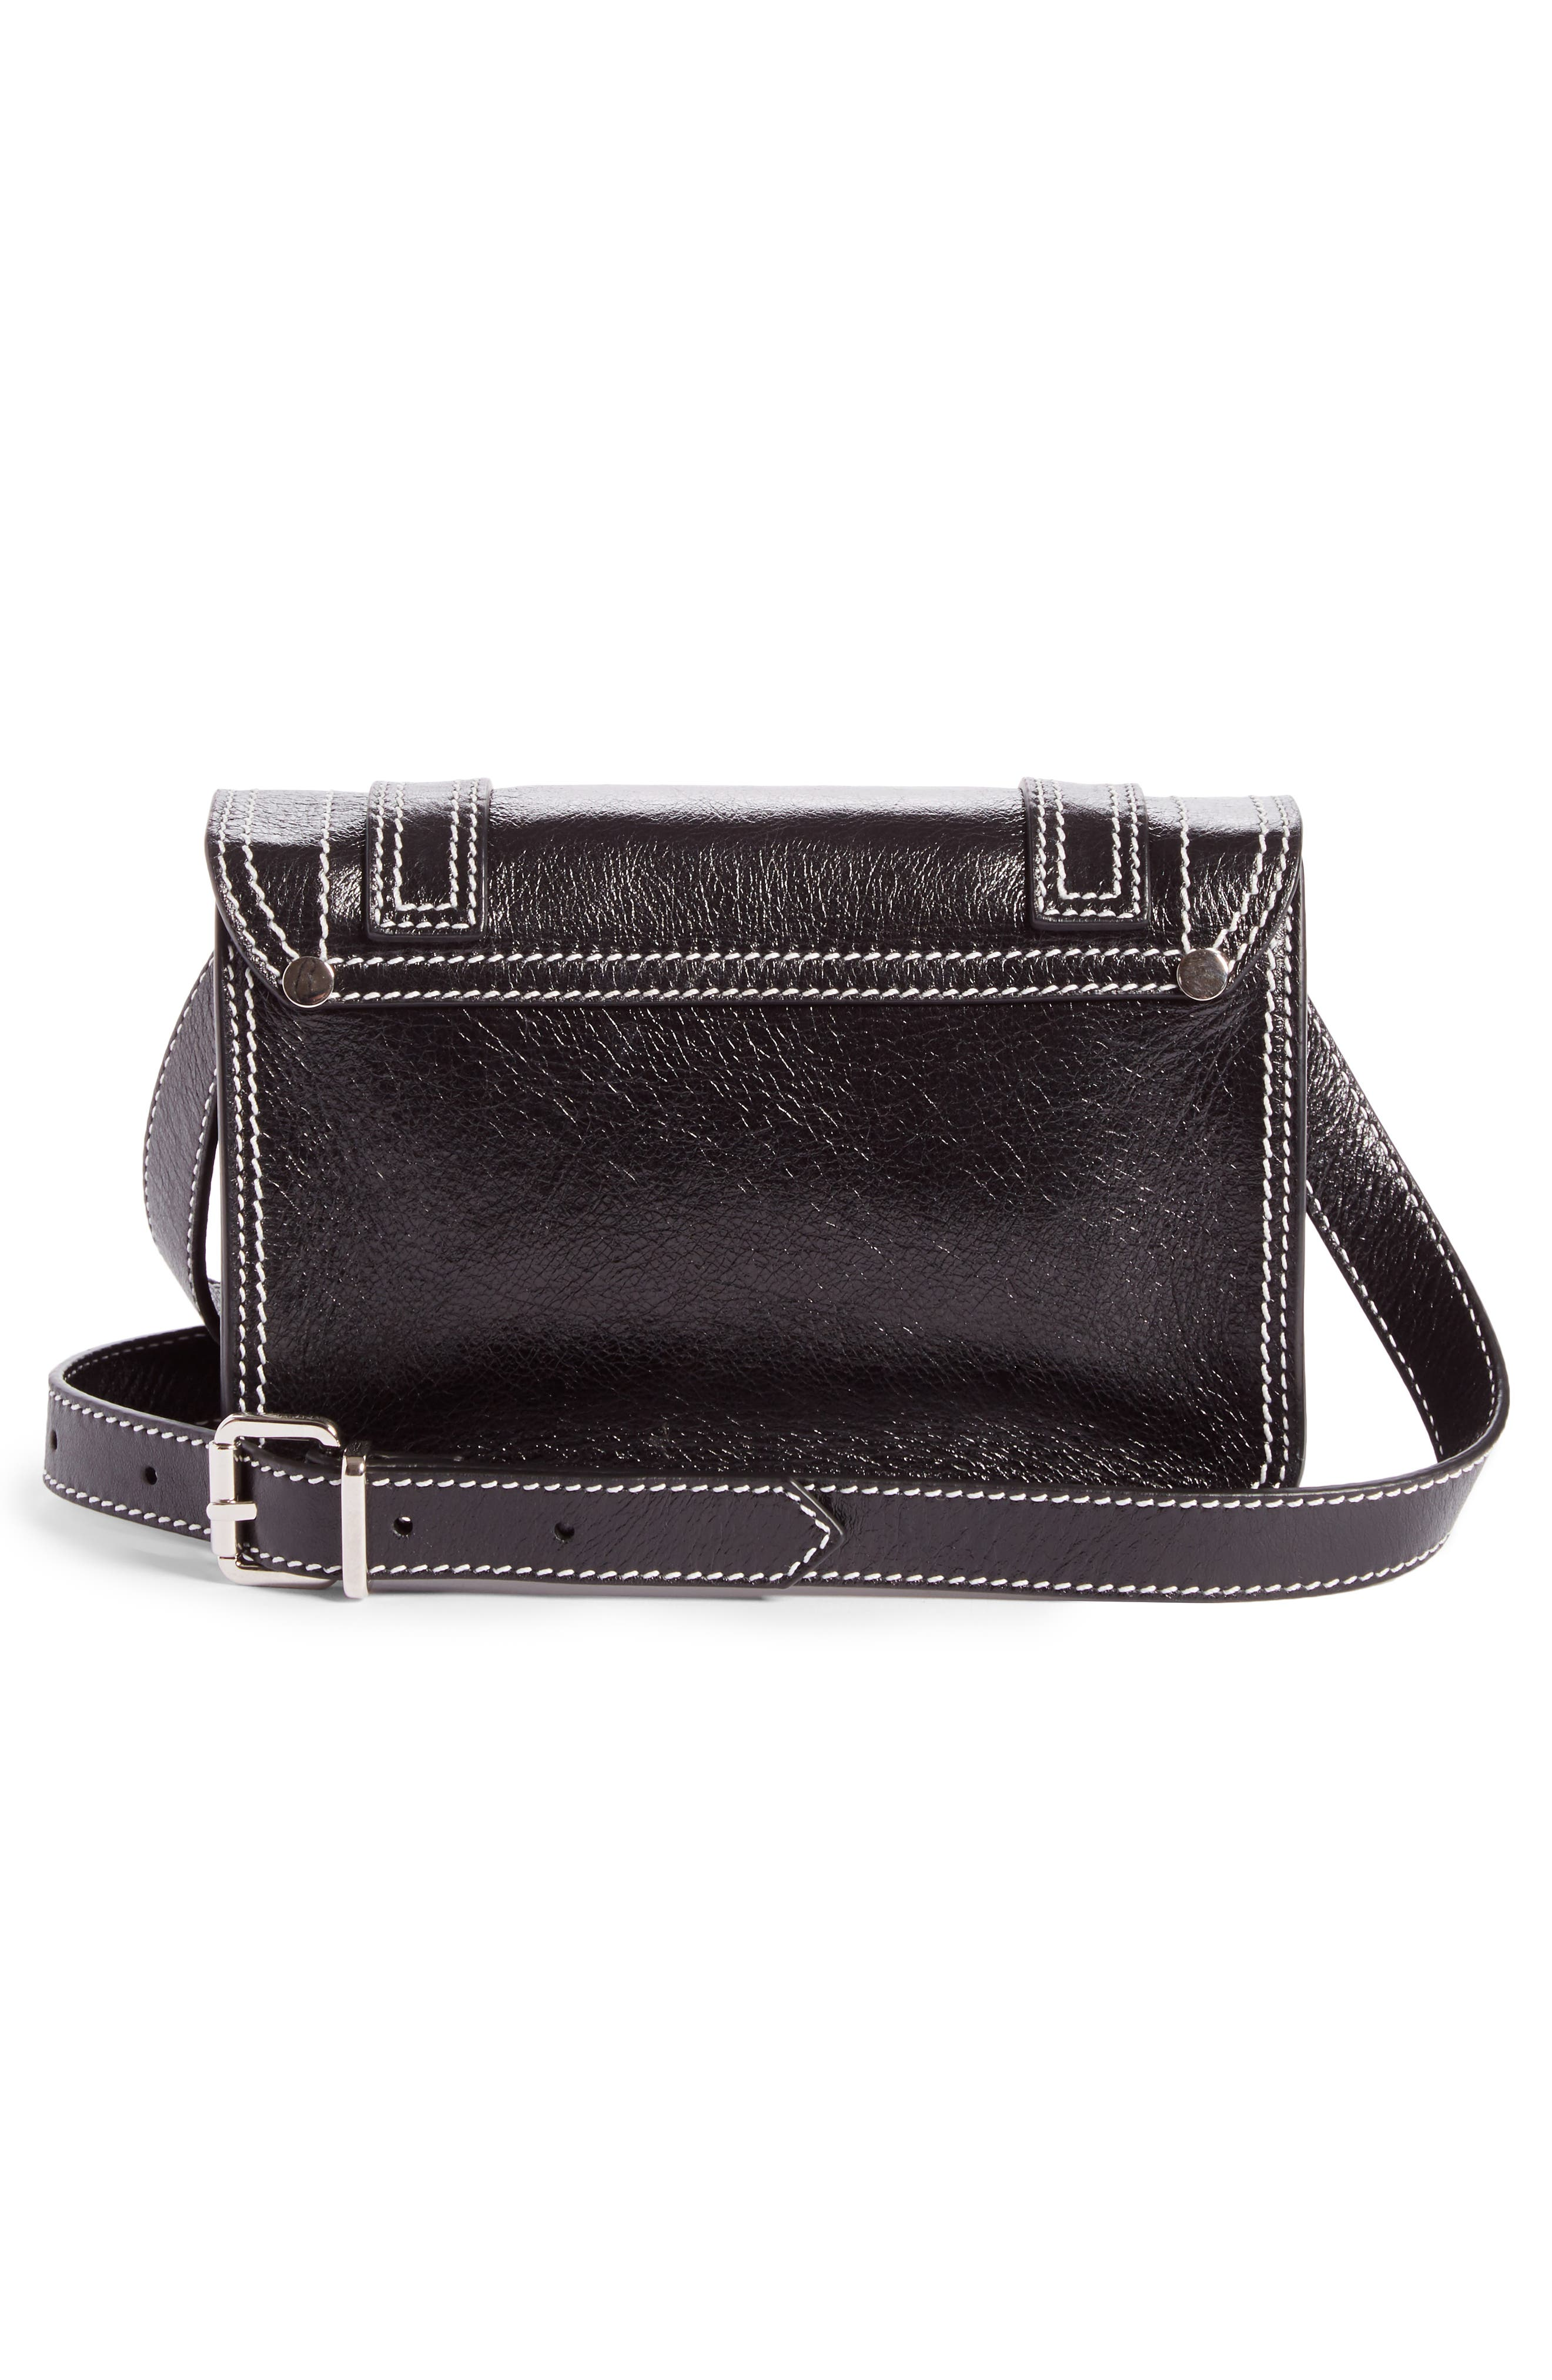 Mini PS1 Leather Crossbody Bag,                             Alternate thumbnail 3, color,                             001